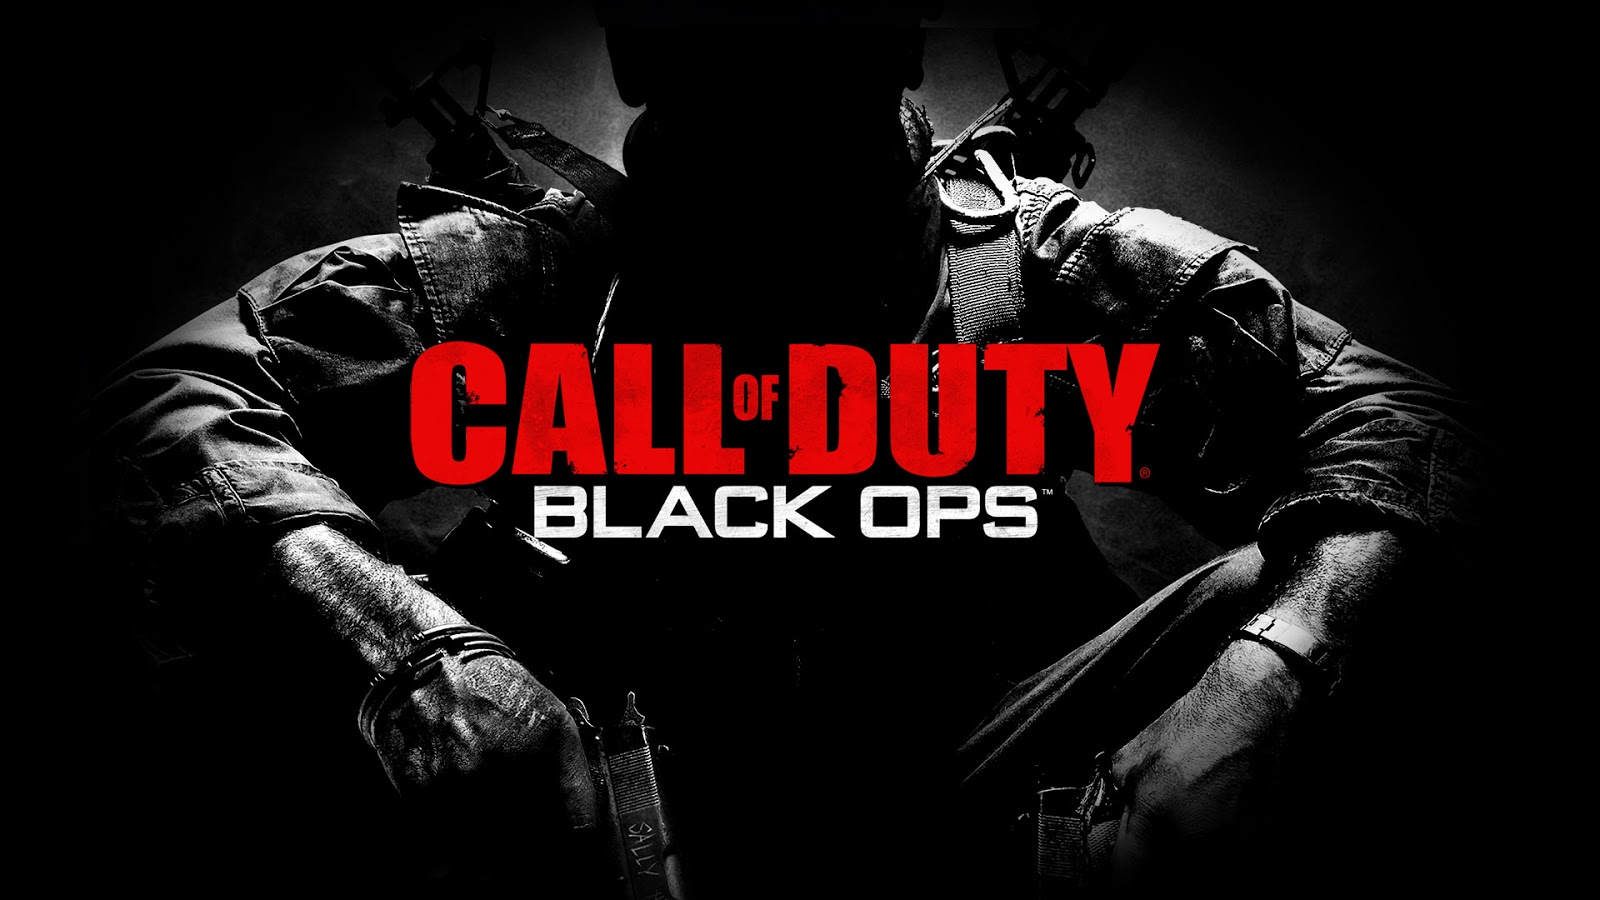 Call of Duty Black OPS Compressed PC Game Free Download 4.49 GB | PC Games Full Version Free ...